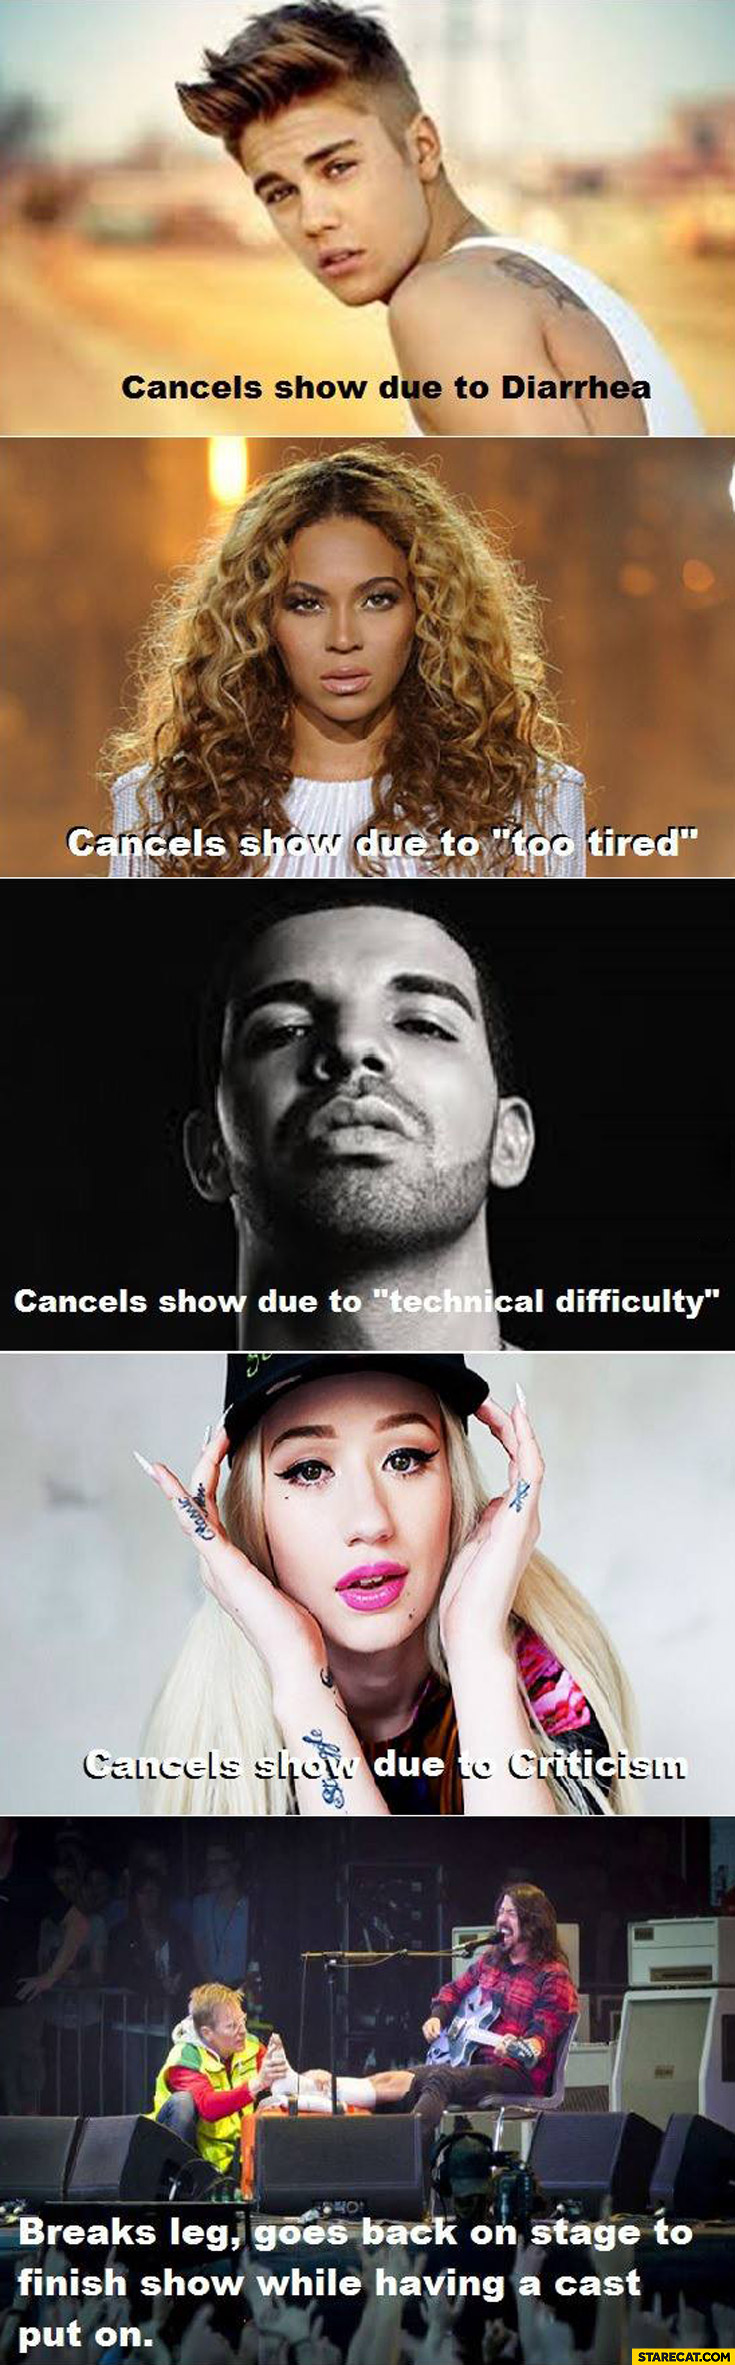 Bieber cancels show due to diarrhea, Beyonce too tired, Drake technical difficulty Iggy Azalea criticism, Dave Grohl breaks leg goes back to stage while having a cast put on